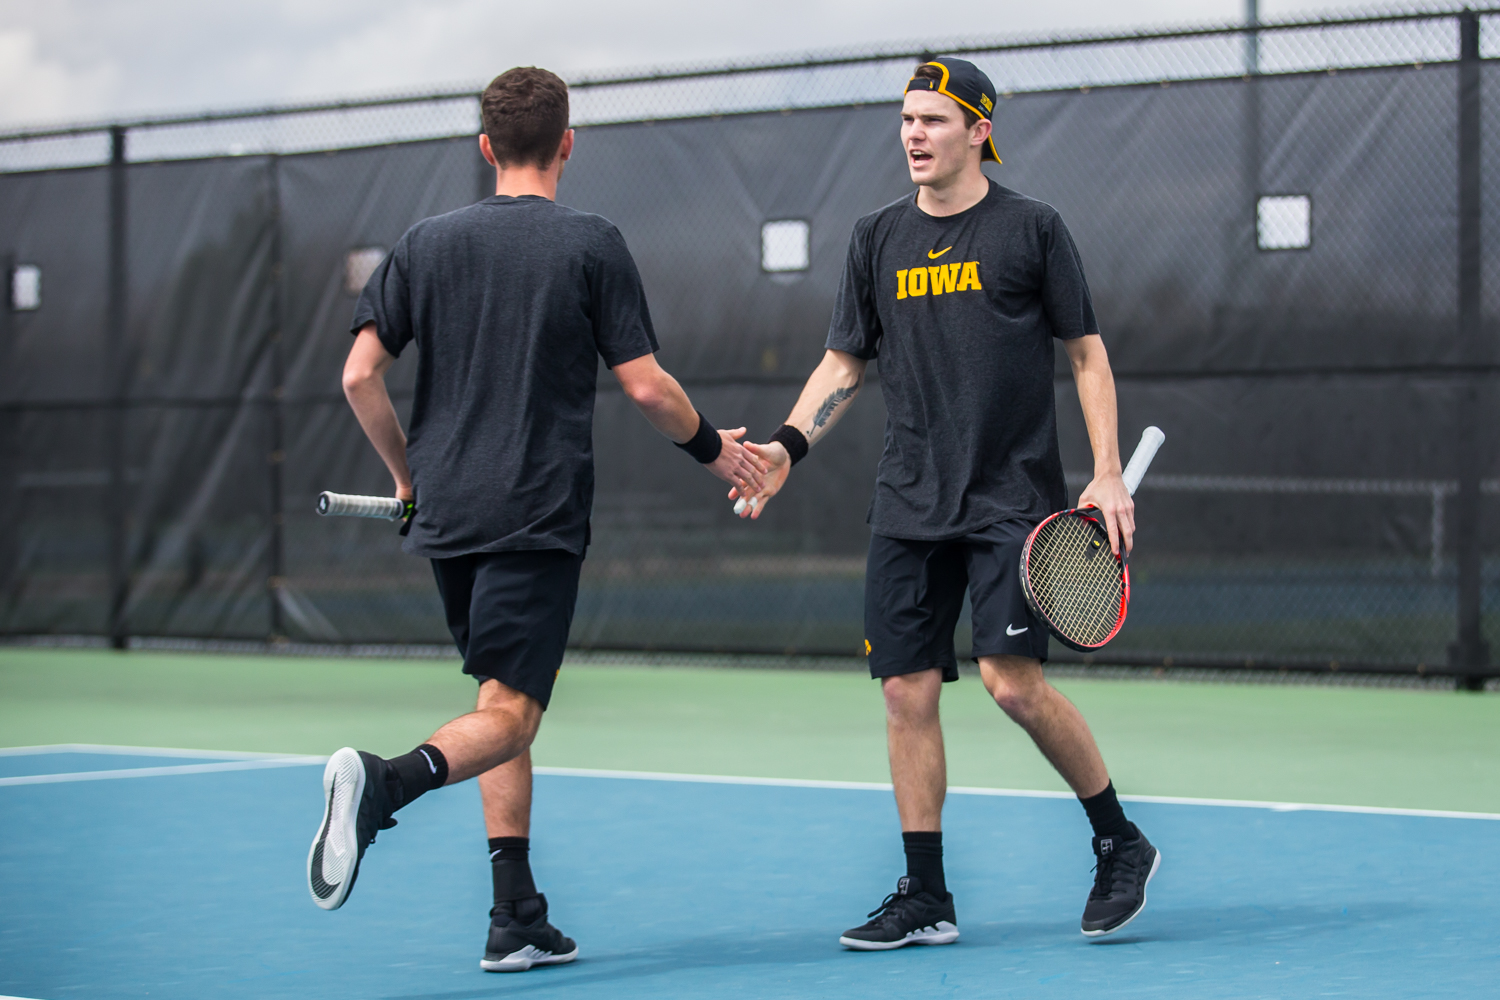 Iowa%27s+Jonas+Larsen+%28right%29+high-fives+Kareem+Allaf+during+a+men%27s+tennis+match+between+Iowa+and+Ohio+State+at+the+HTRC+on+Sunday%2C+April+7%2C+2019.+The+Buckeyes+defeated+the+Hawkeyes%2C+4-1.